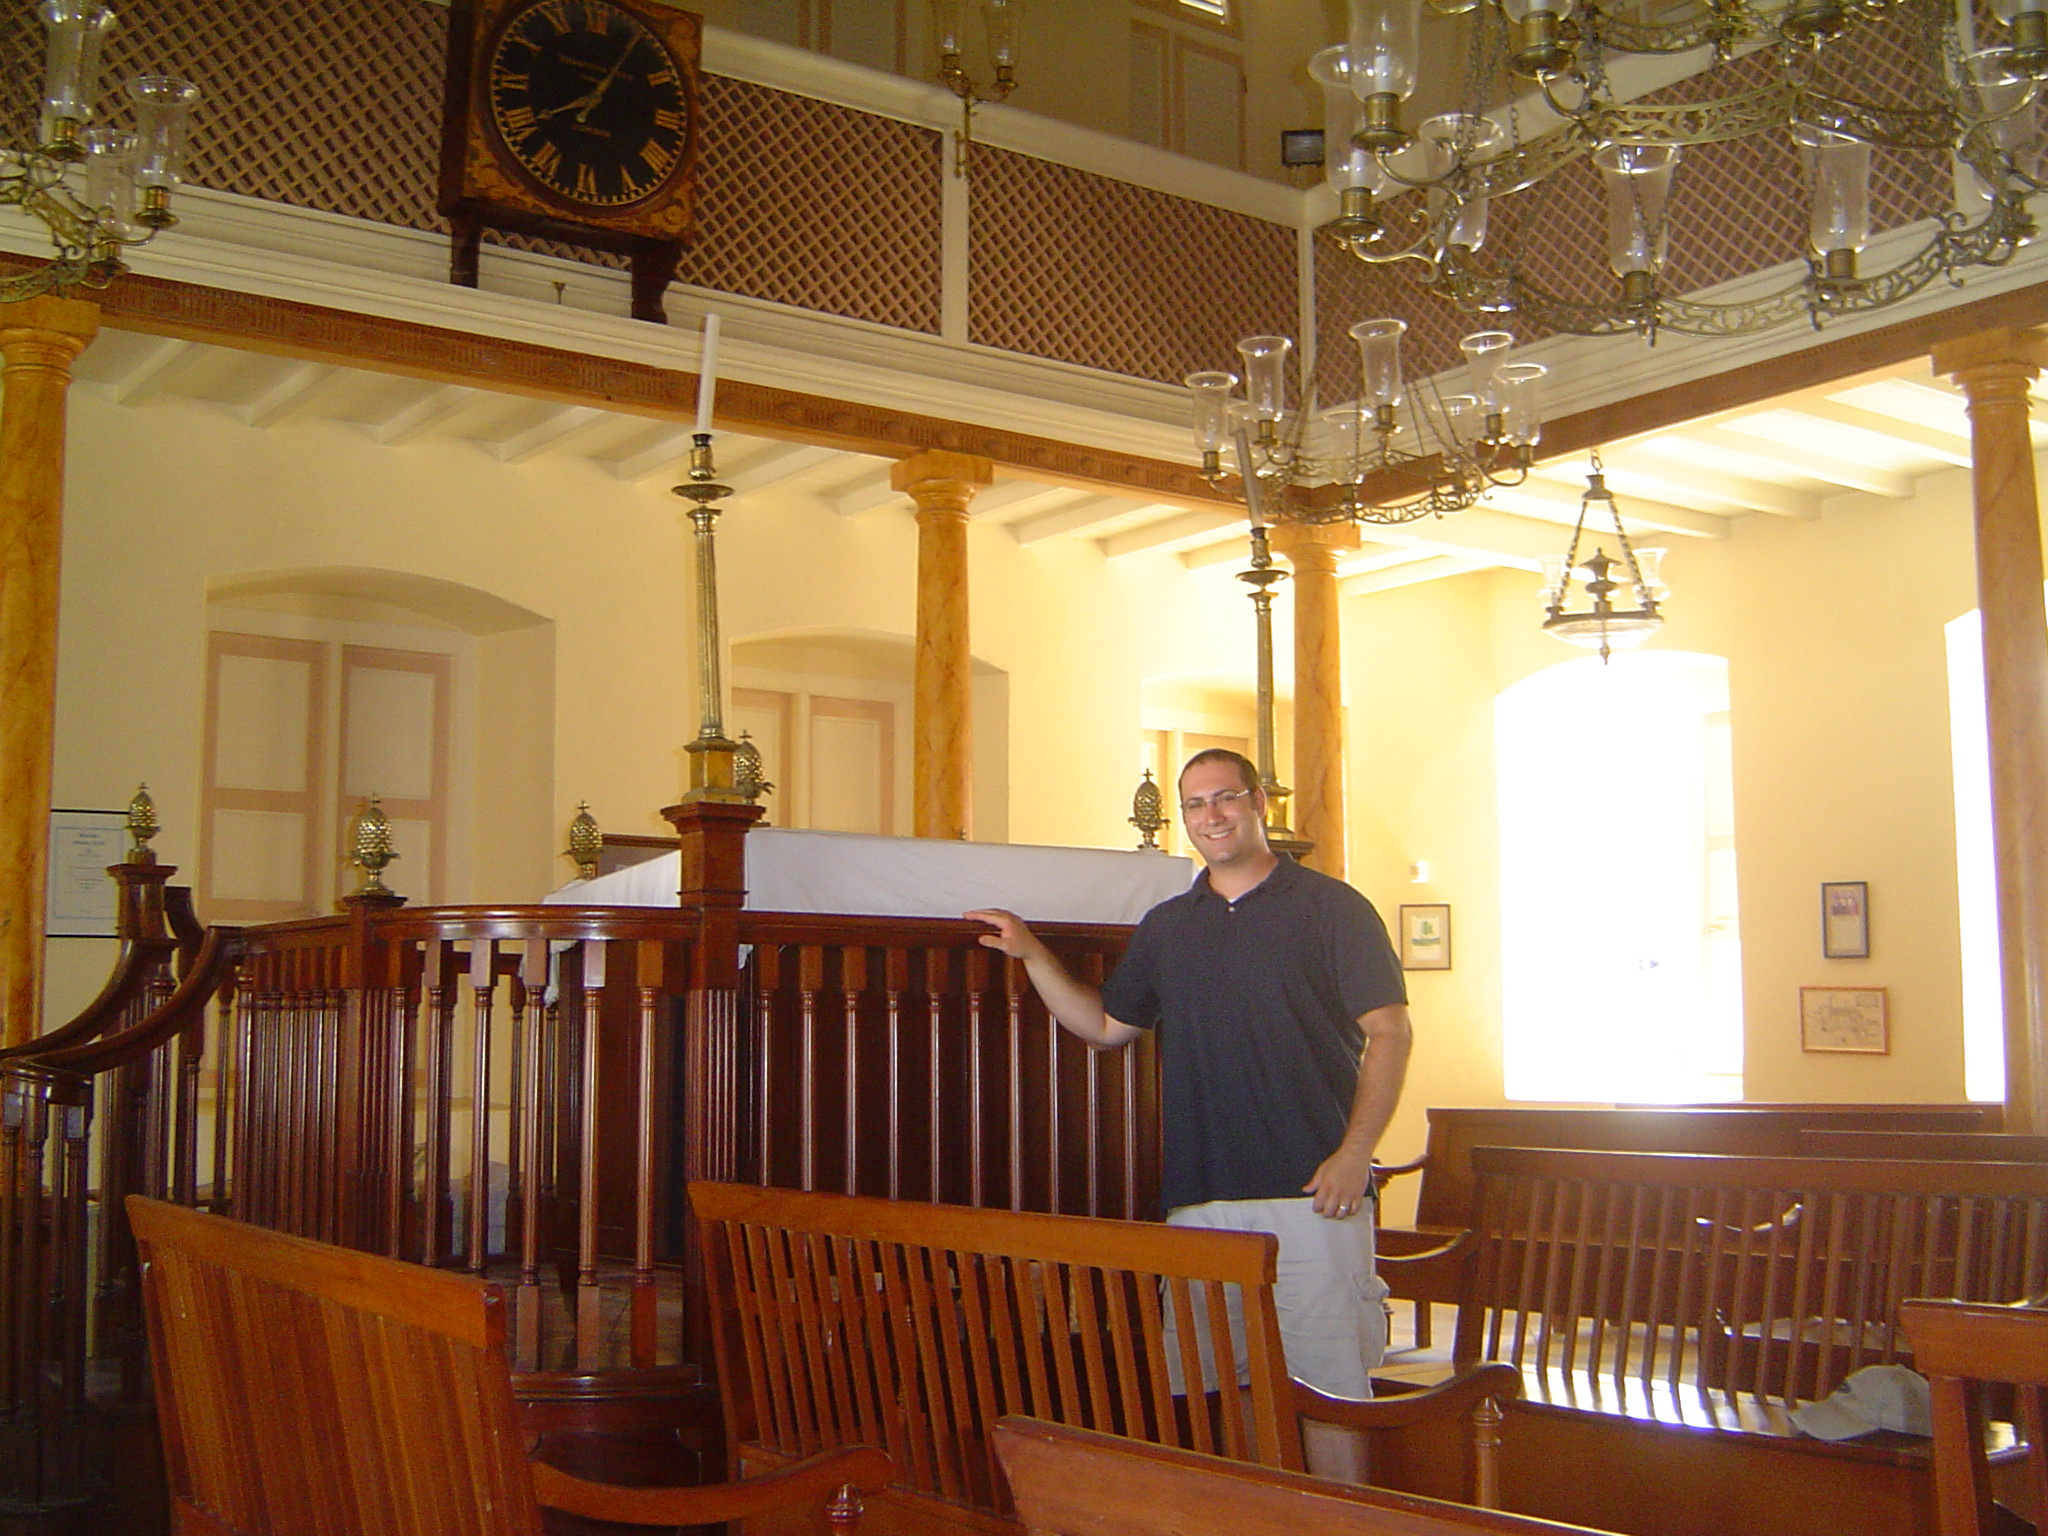 At the Bridgetown synagogue in Barbados